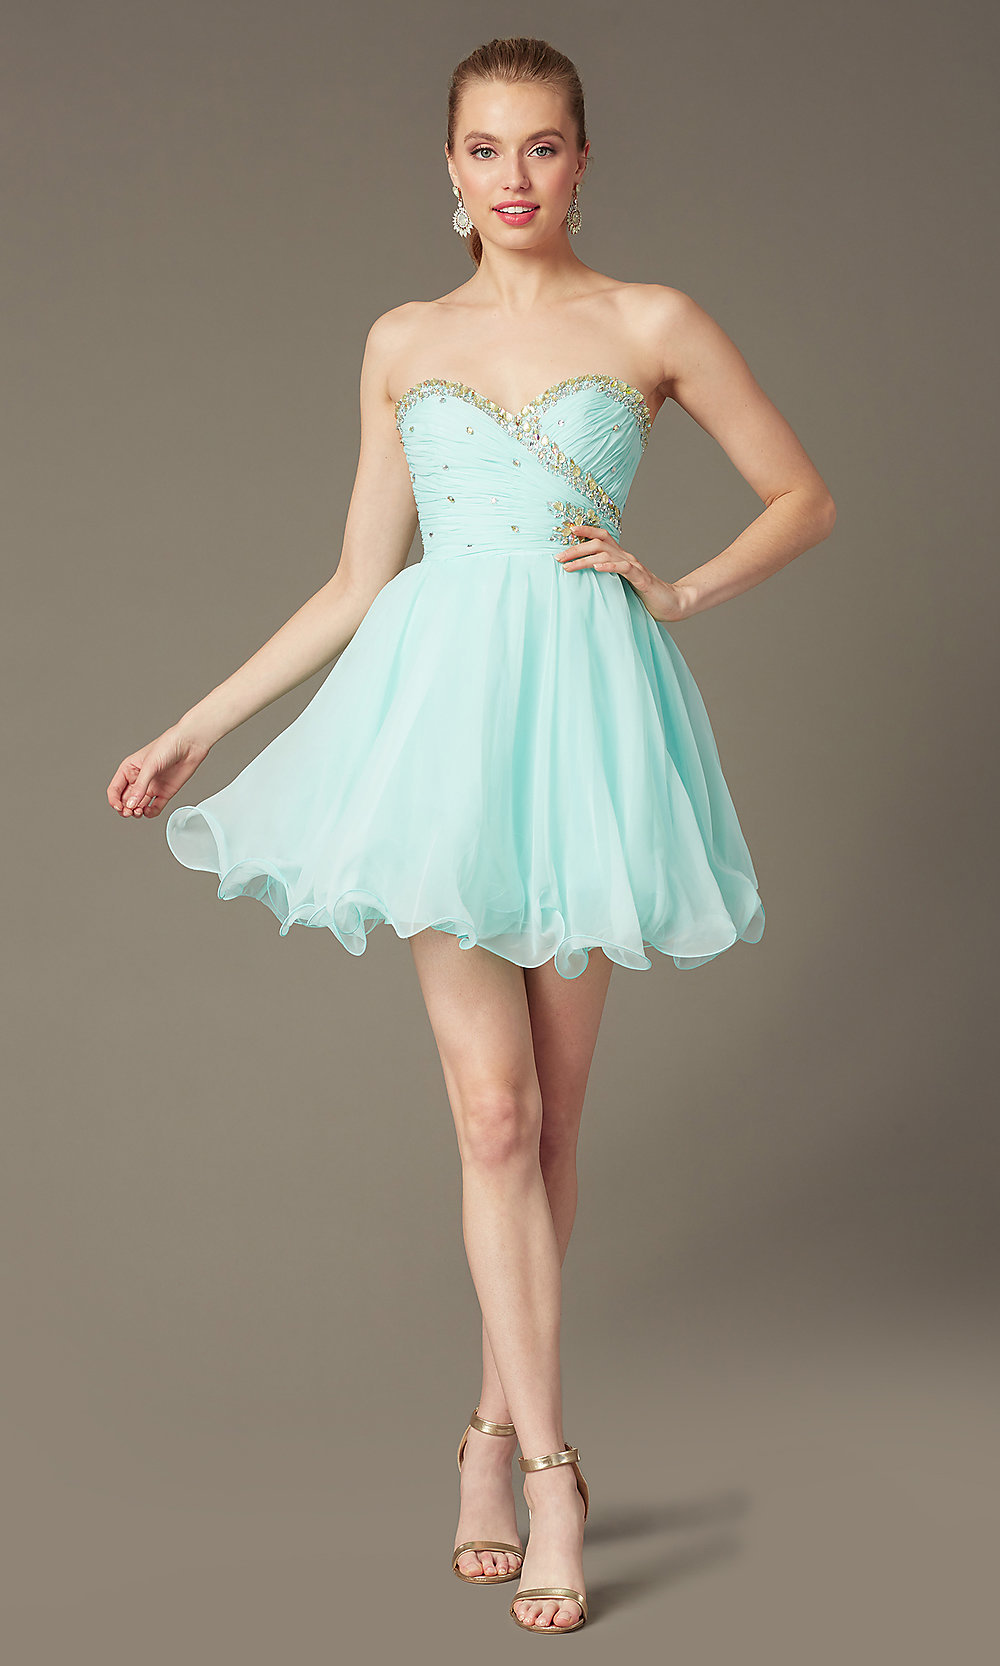 Short Prom Dress Cocktail Dresses Short Formal Dress